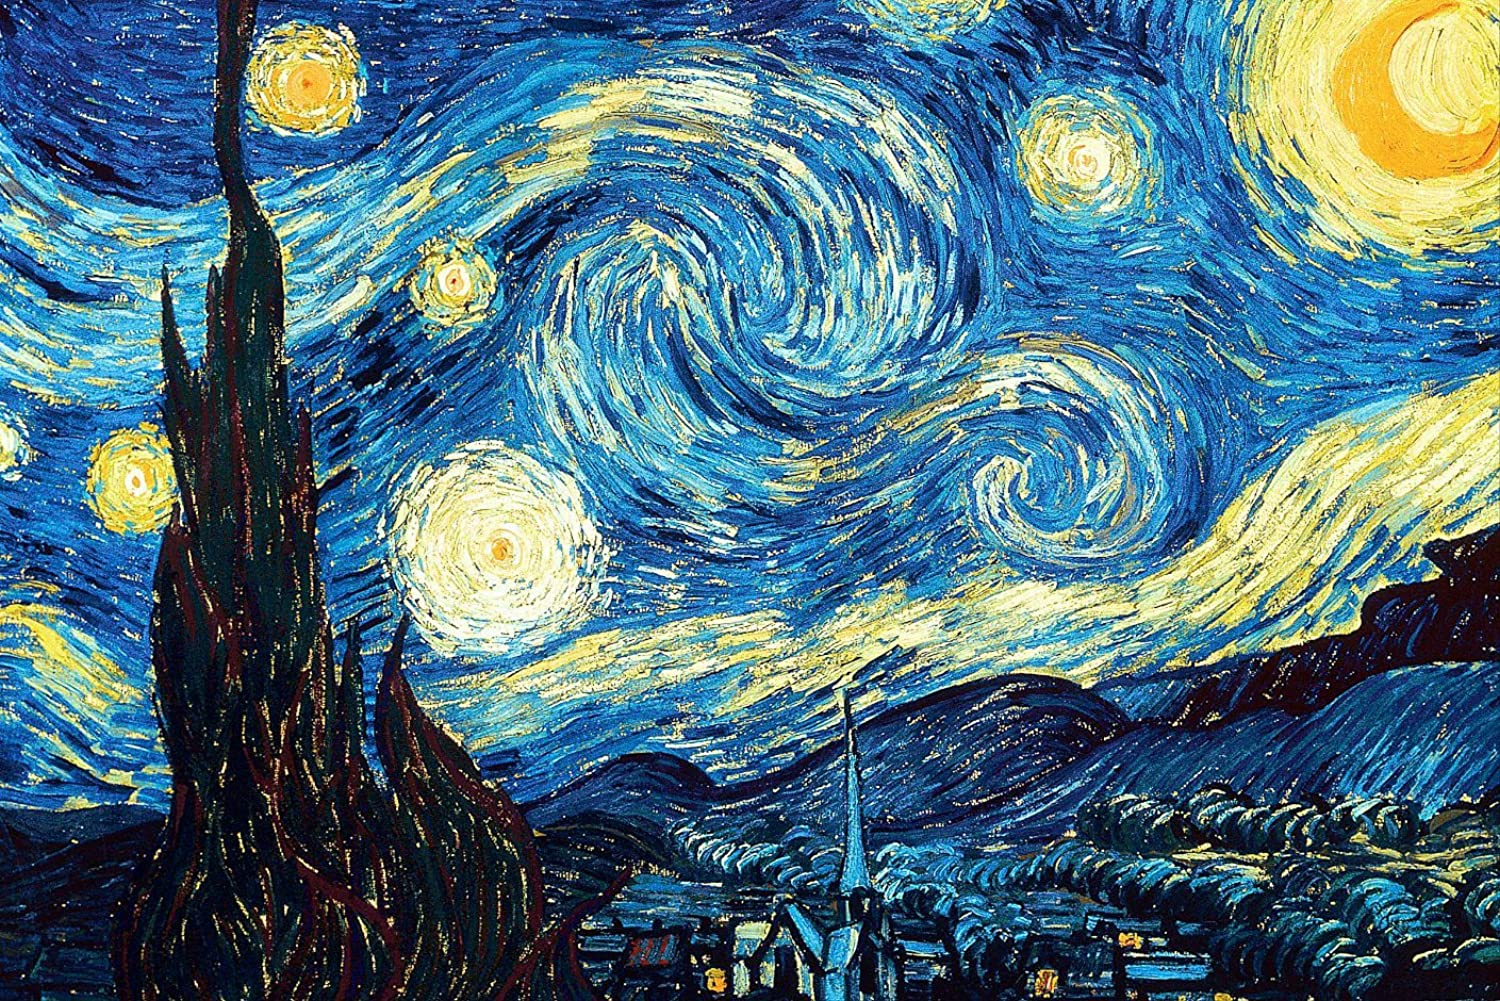 Starry Night by Van Gogh XL 5D Paint with Diamonds Full Kit with Free Premium Diamond Pen  60x40cm Full Canvas Square Drill DIY Diamond Painting Kit Plus Full Toolkit